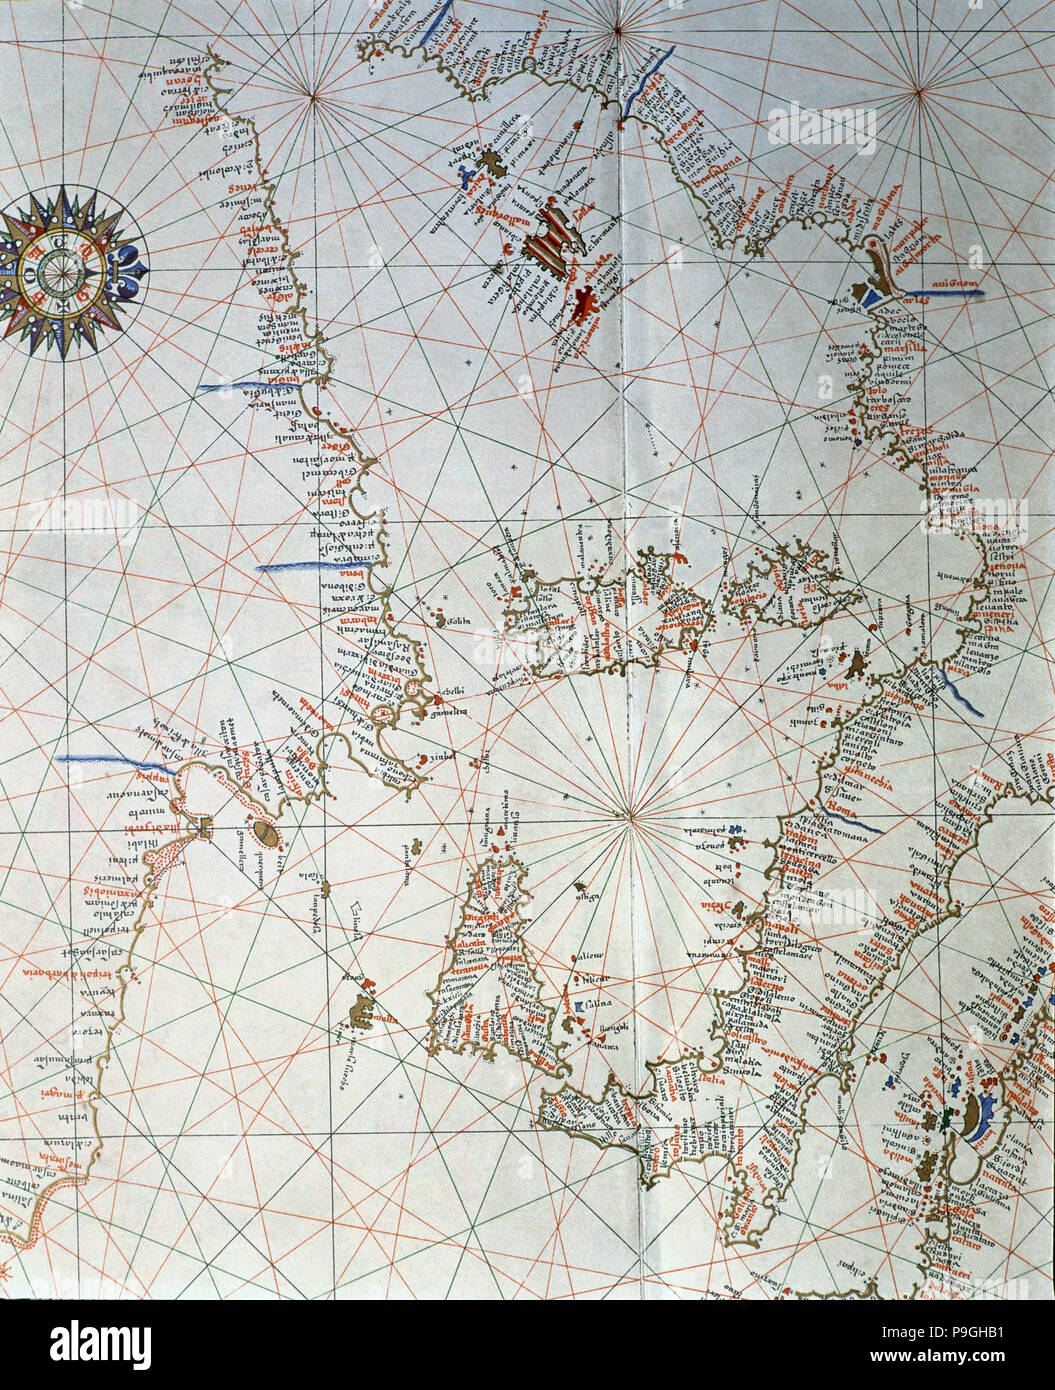 Atlas of Joan Martines, Messina, 1582. Portulan chart of the western Mediterranean, with Italy, E… Stock Photo